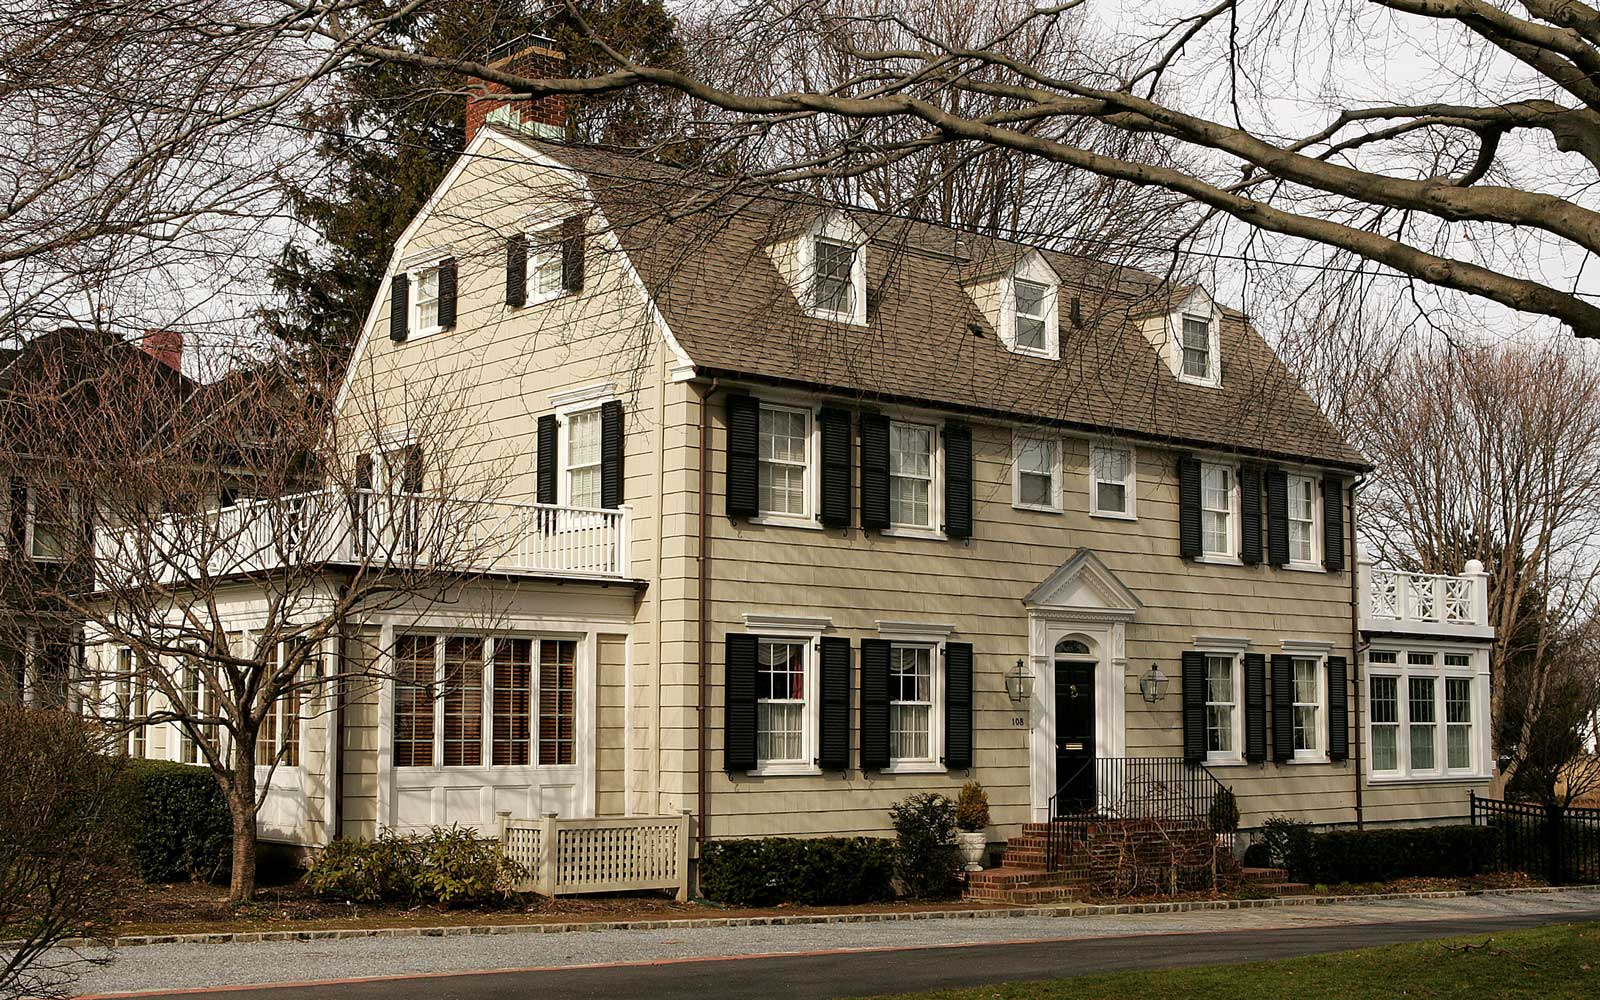 The Amityville Horror house rich history and beauty are overshadowed by the story of George and Kathy Lutz, the previous residents of 112 Ocean Avenue, who claimed that shortly after moving into the house they fled in terror driven out by paranormal activ